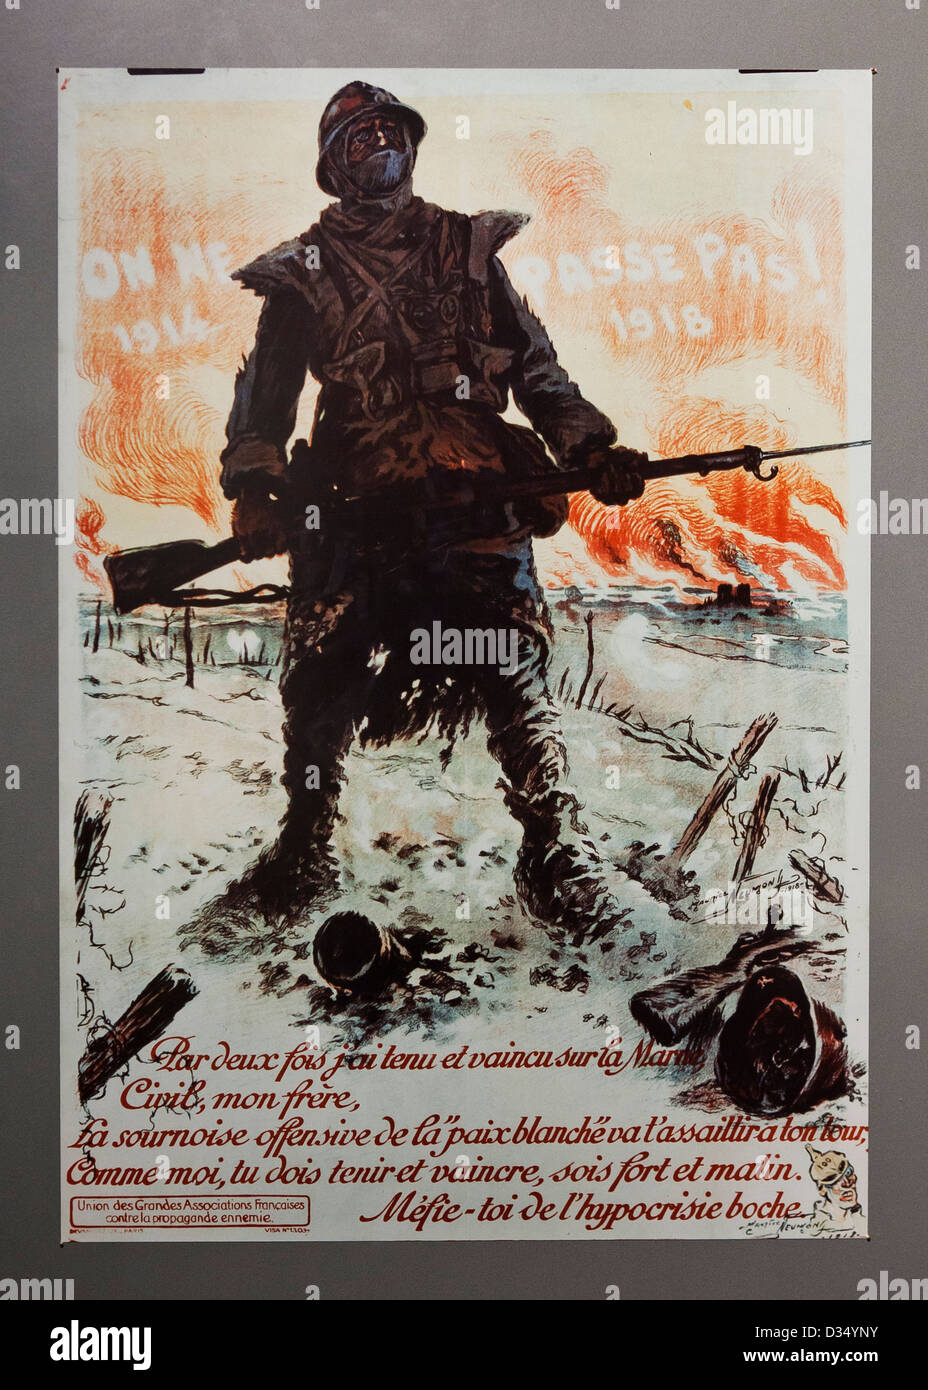 They Shall Not Pass - French WWI propaganda poster - USA - Stock Image